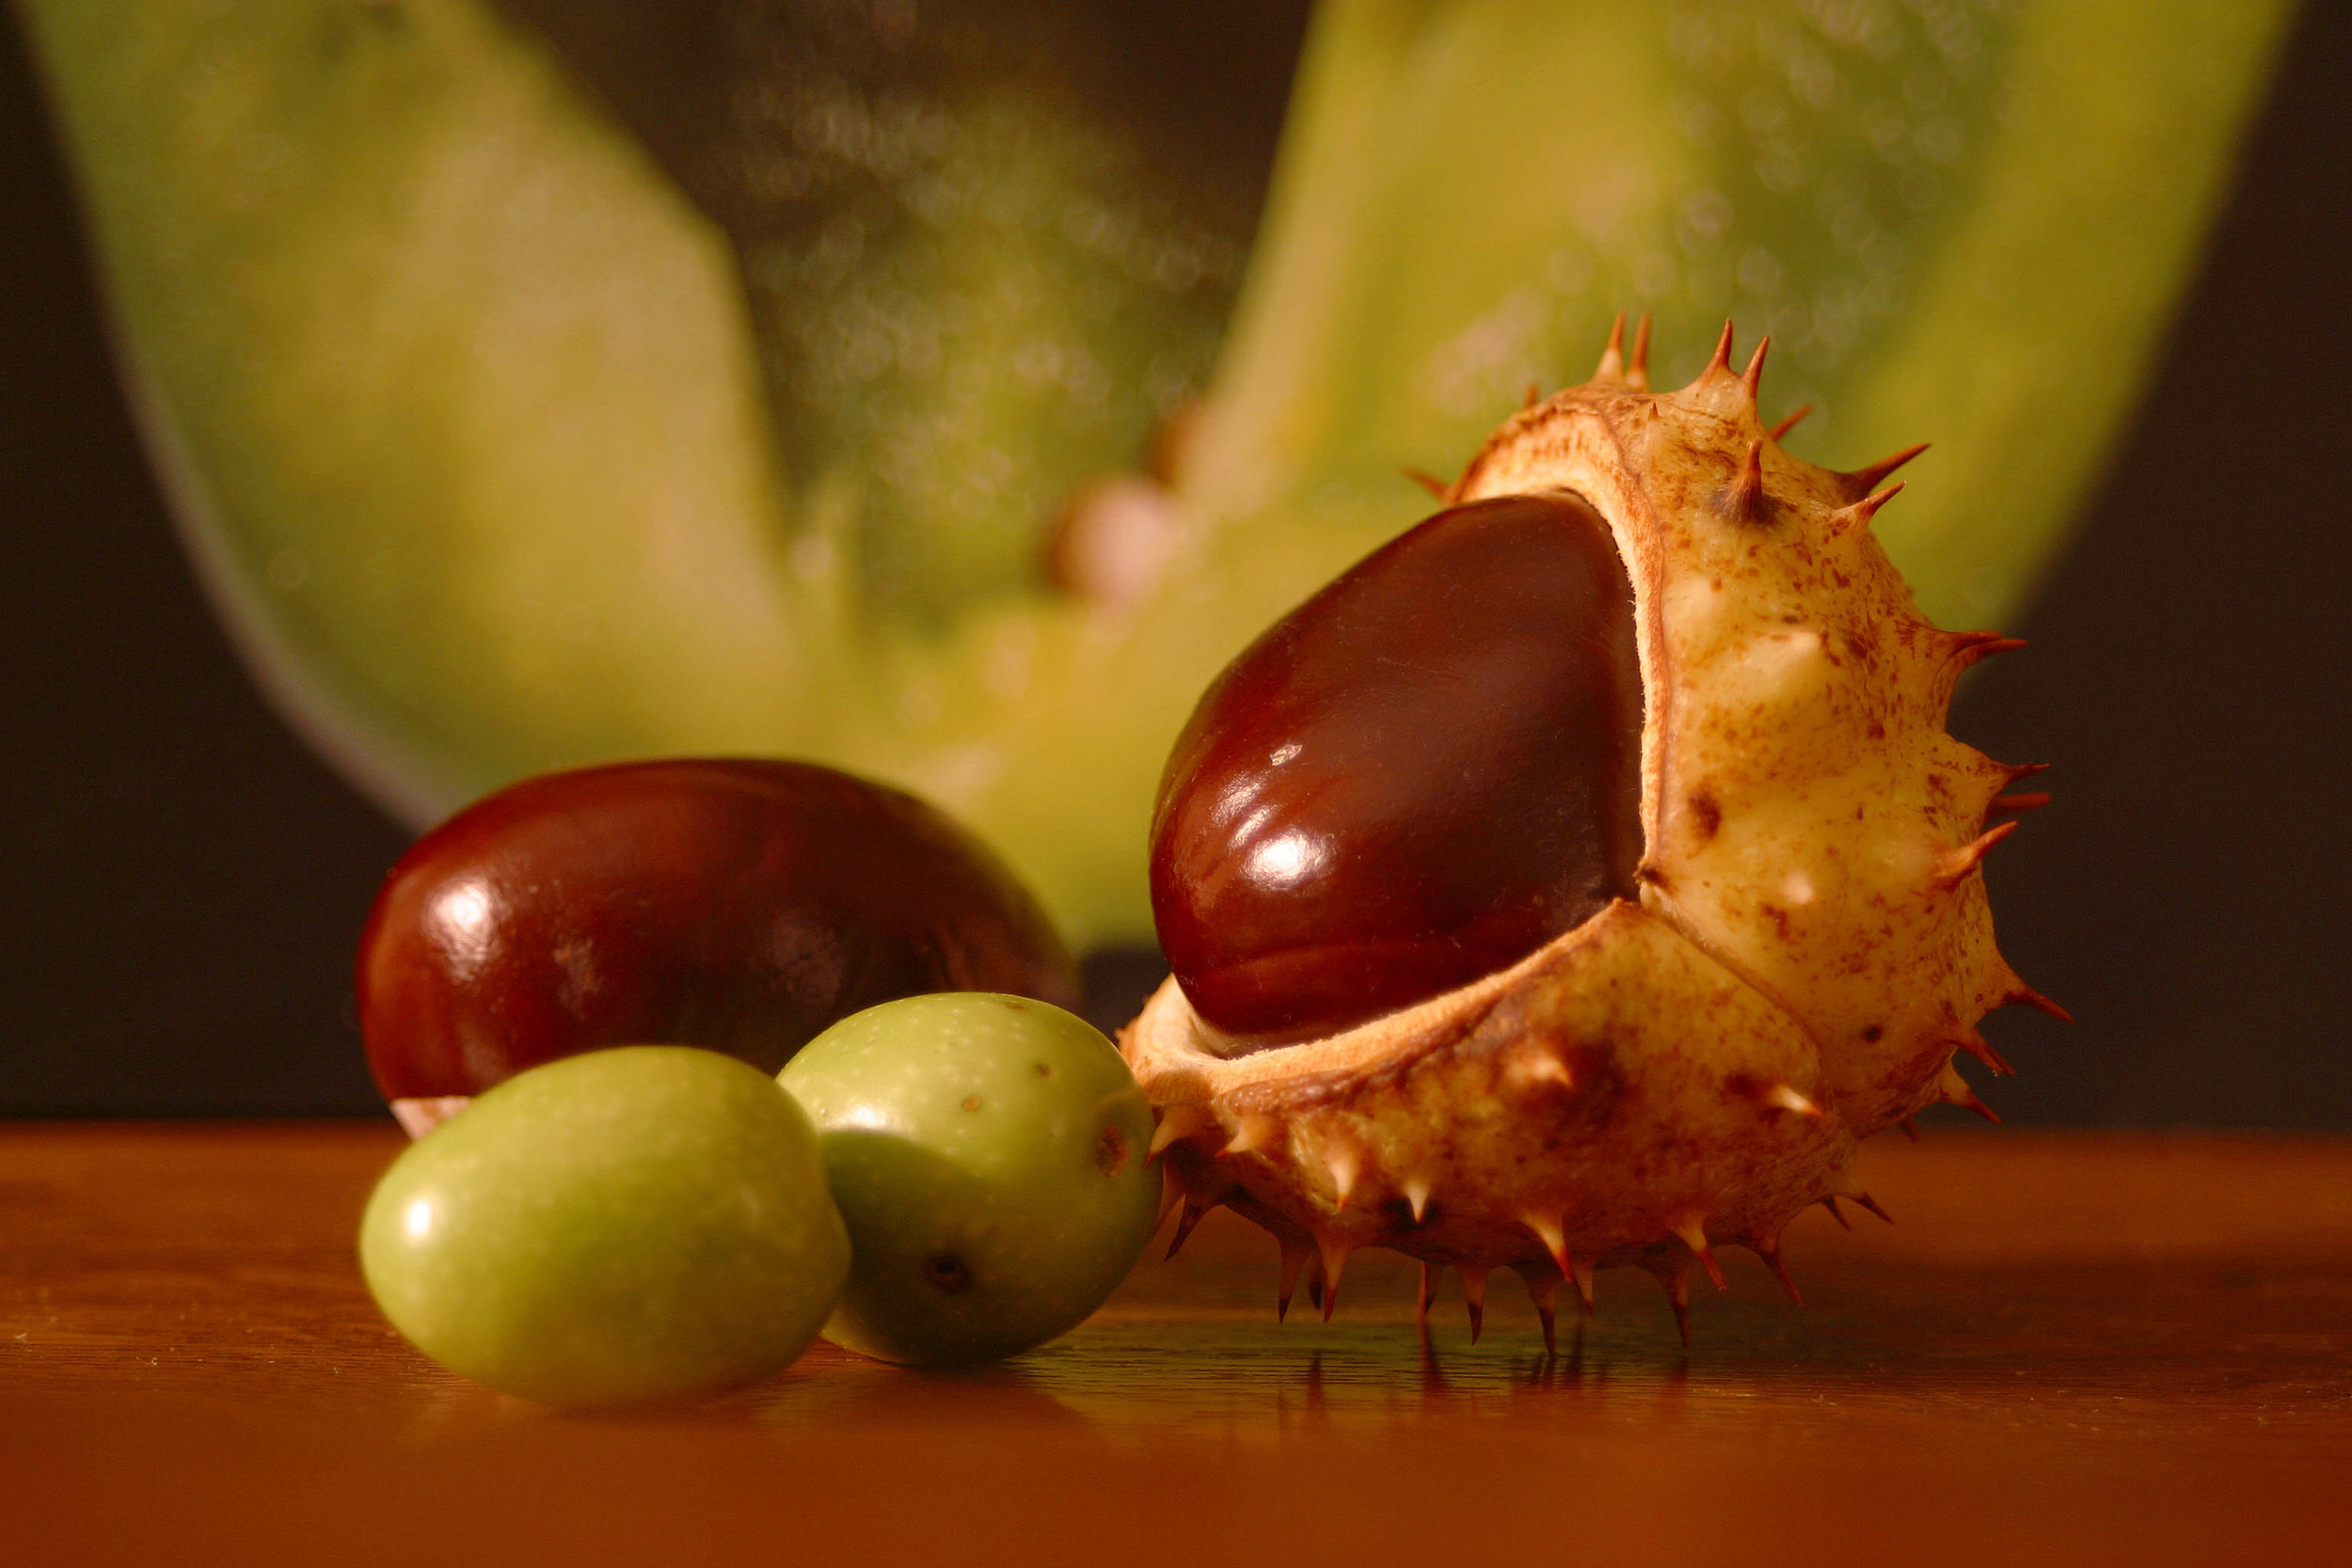 chestnuts and olives.jpg